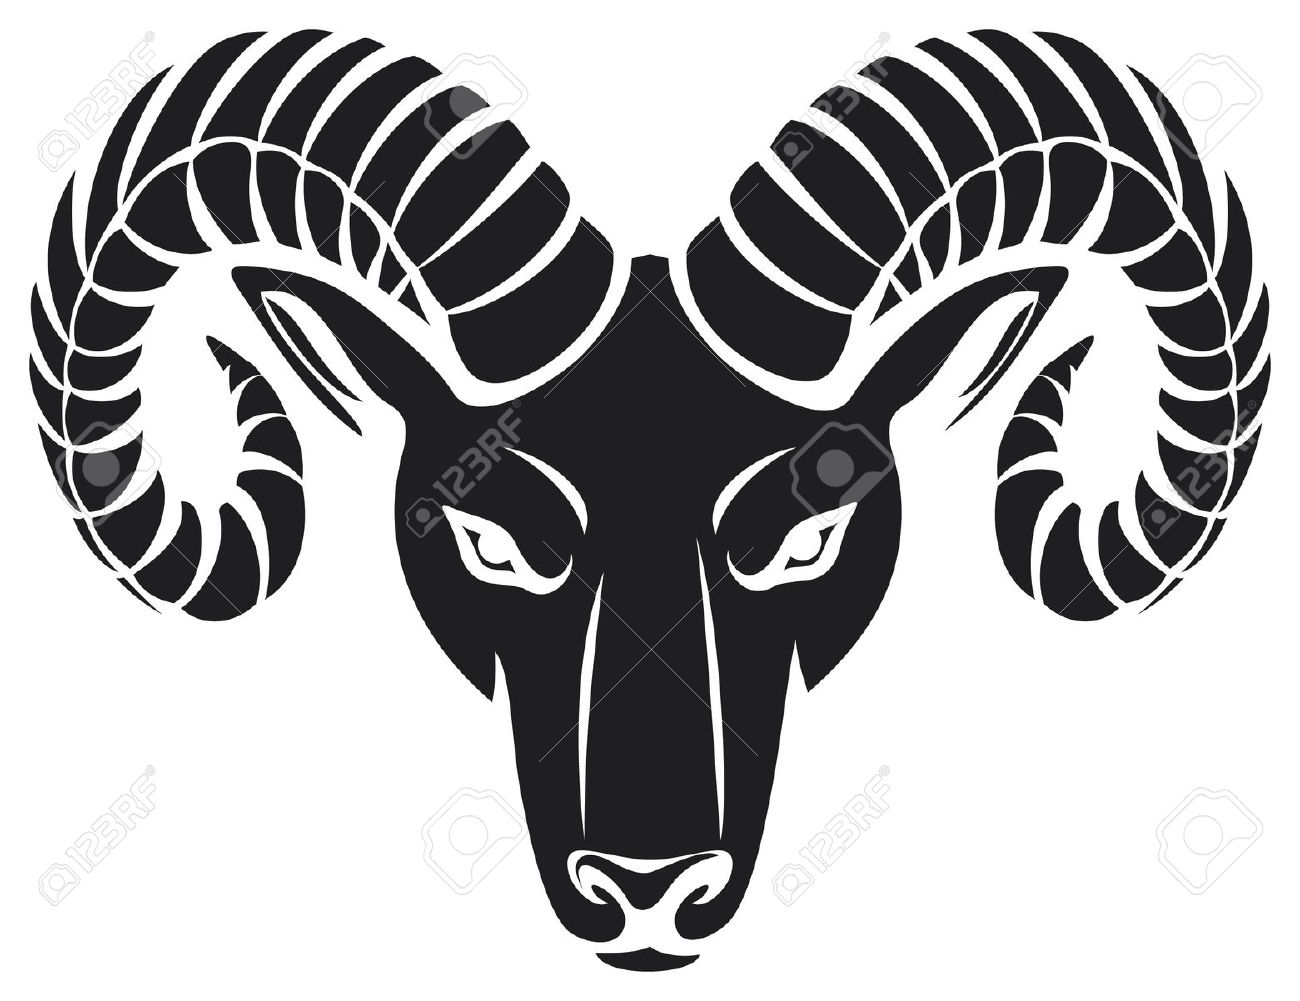 a451826640e5ffe0ec56d334ee387653_black-sheep-head-of-the-ram-cute-black-and-white-ram-head-clipart_1300-1001